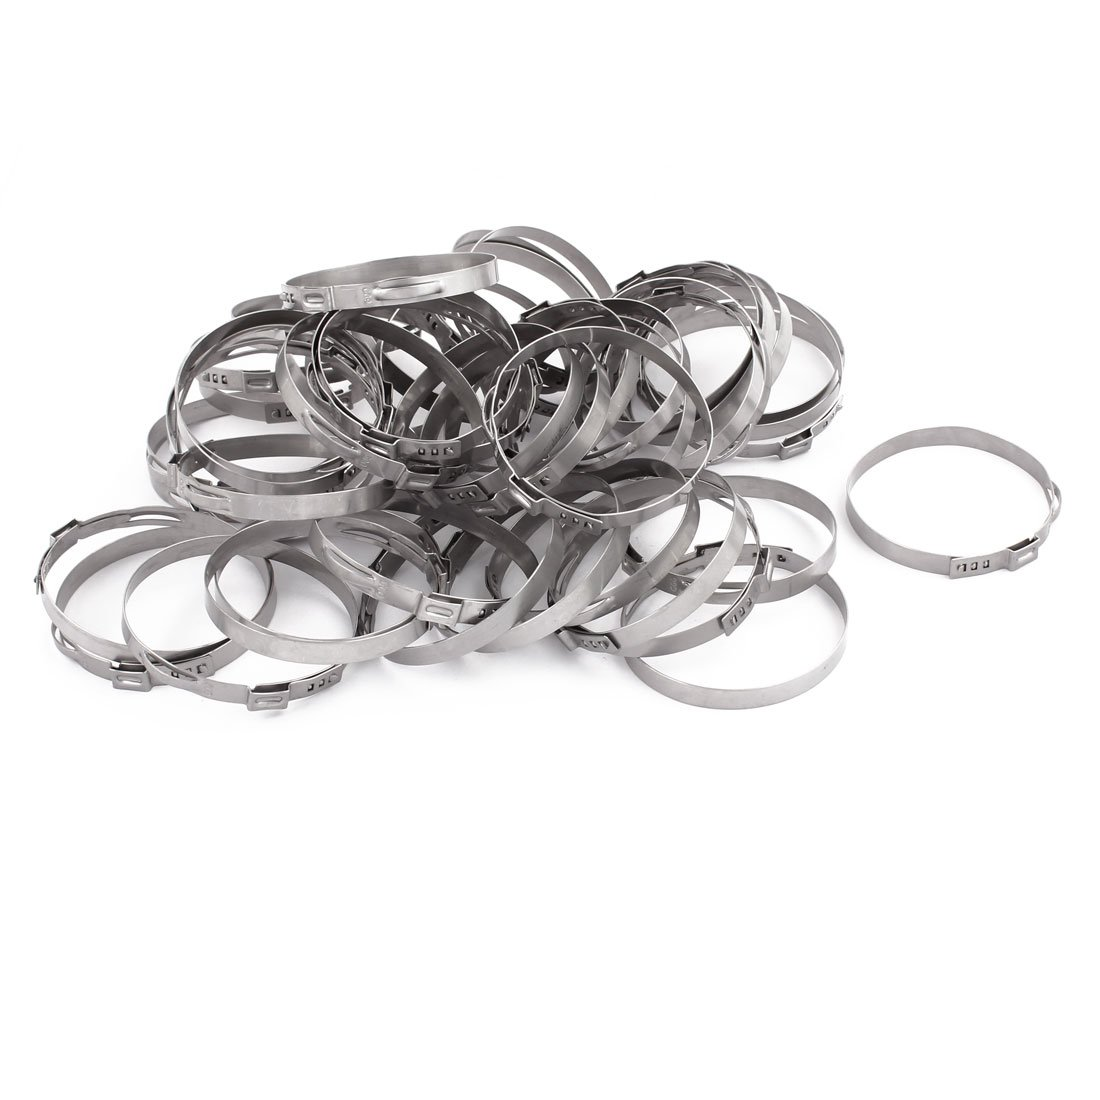 uxcell 56.8mm-60mm 304 Stainless Steel Adjustable Tube Hose Clamps Silver Tone 50pcs